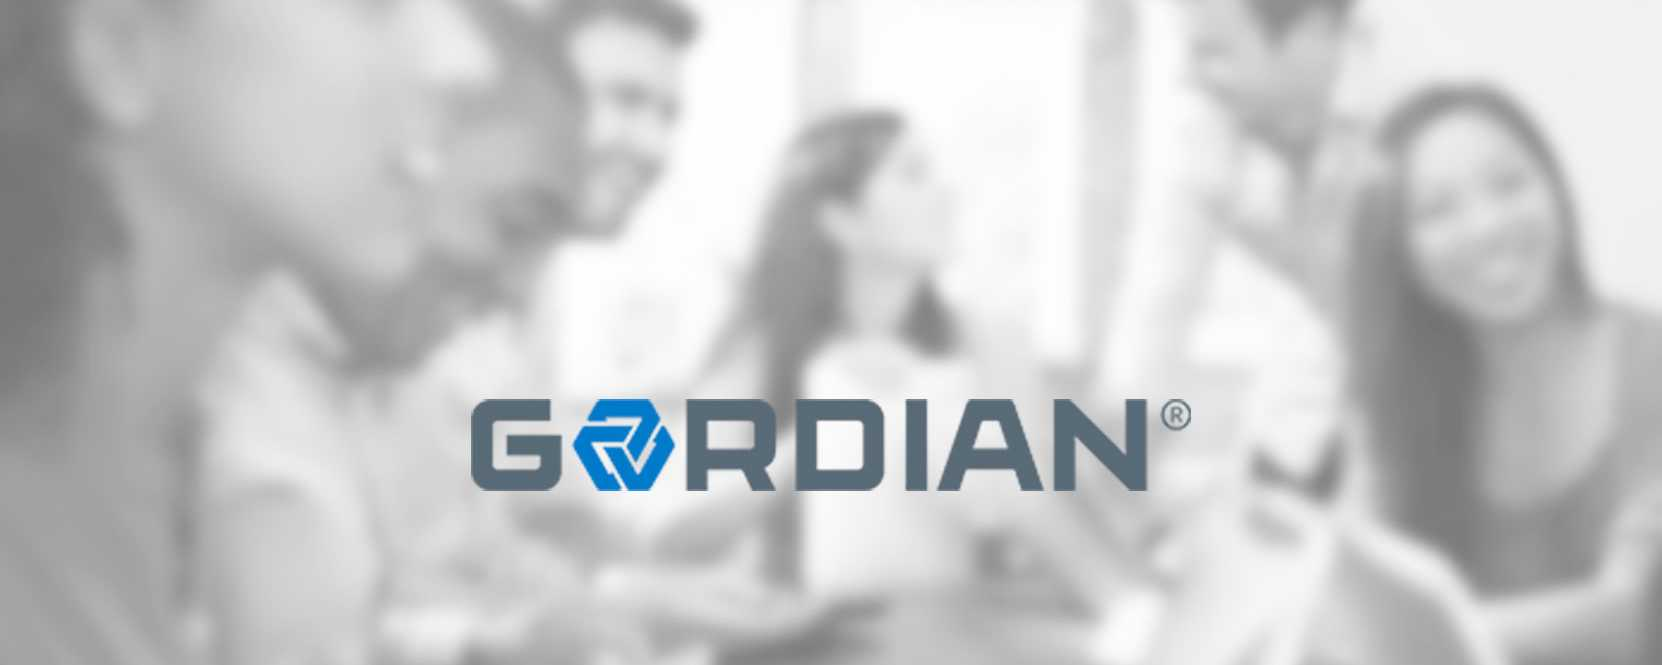 Accruent - Resources - Press Releases / News - Gordian Expands Facilities Planning Portfolio with Addition of VFA and Kykloud Solutions.   - Hero